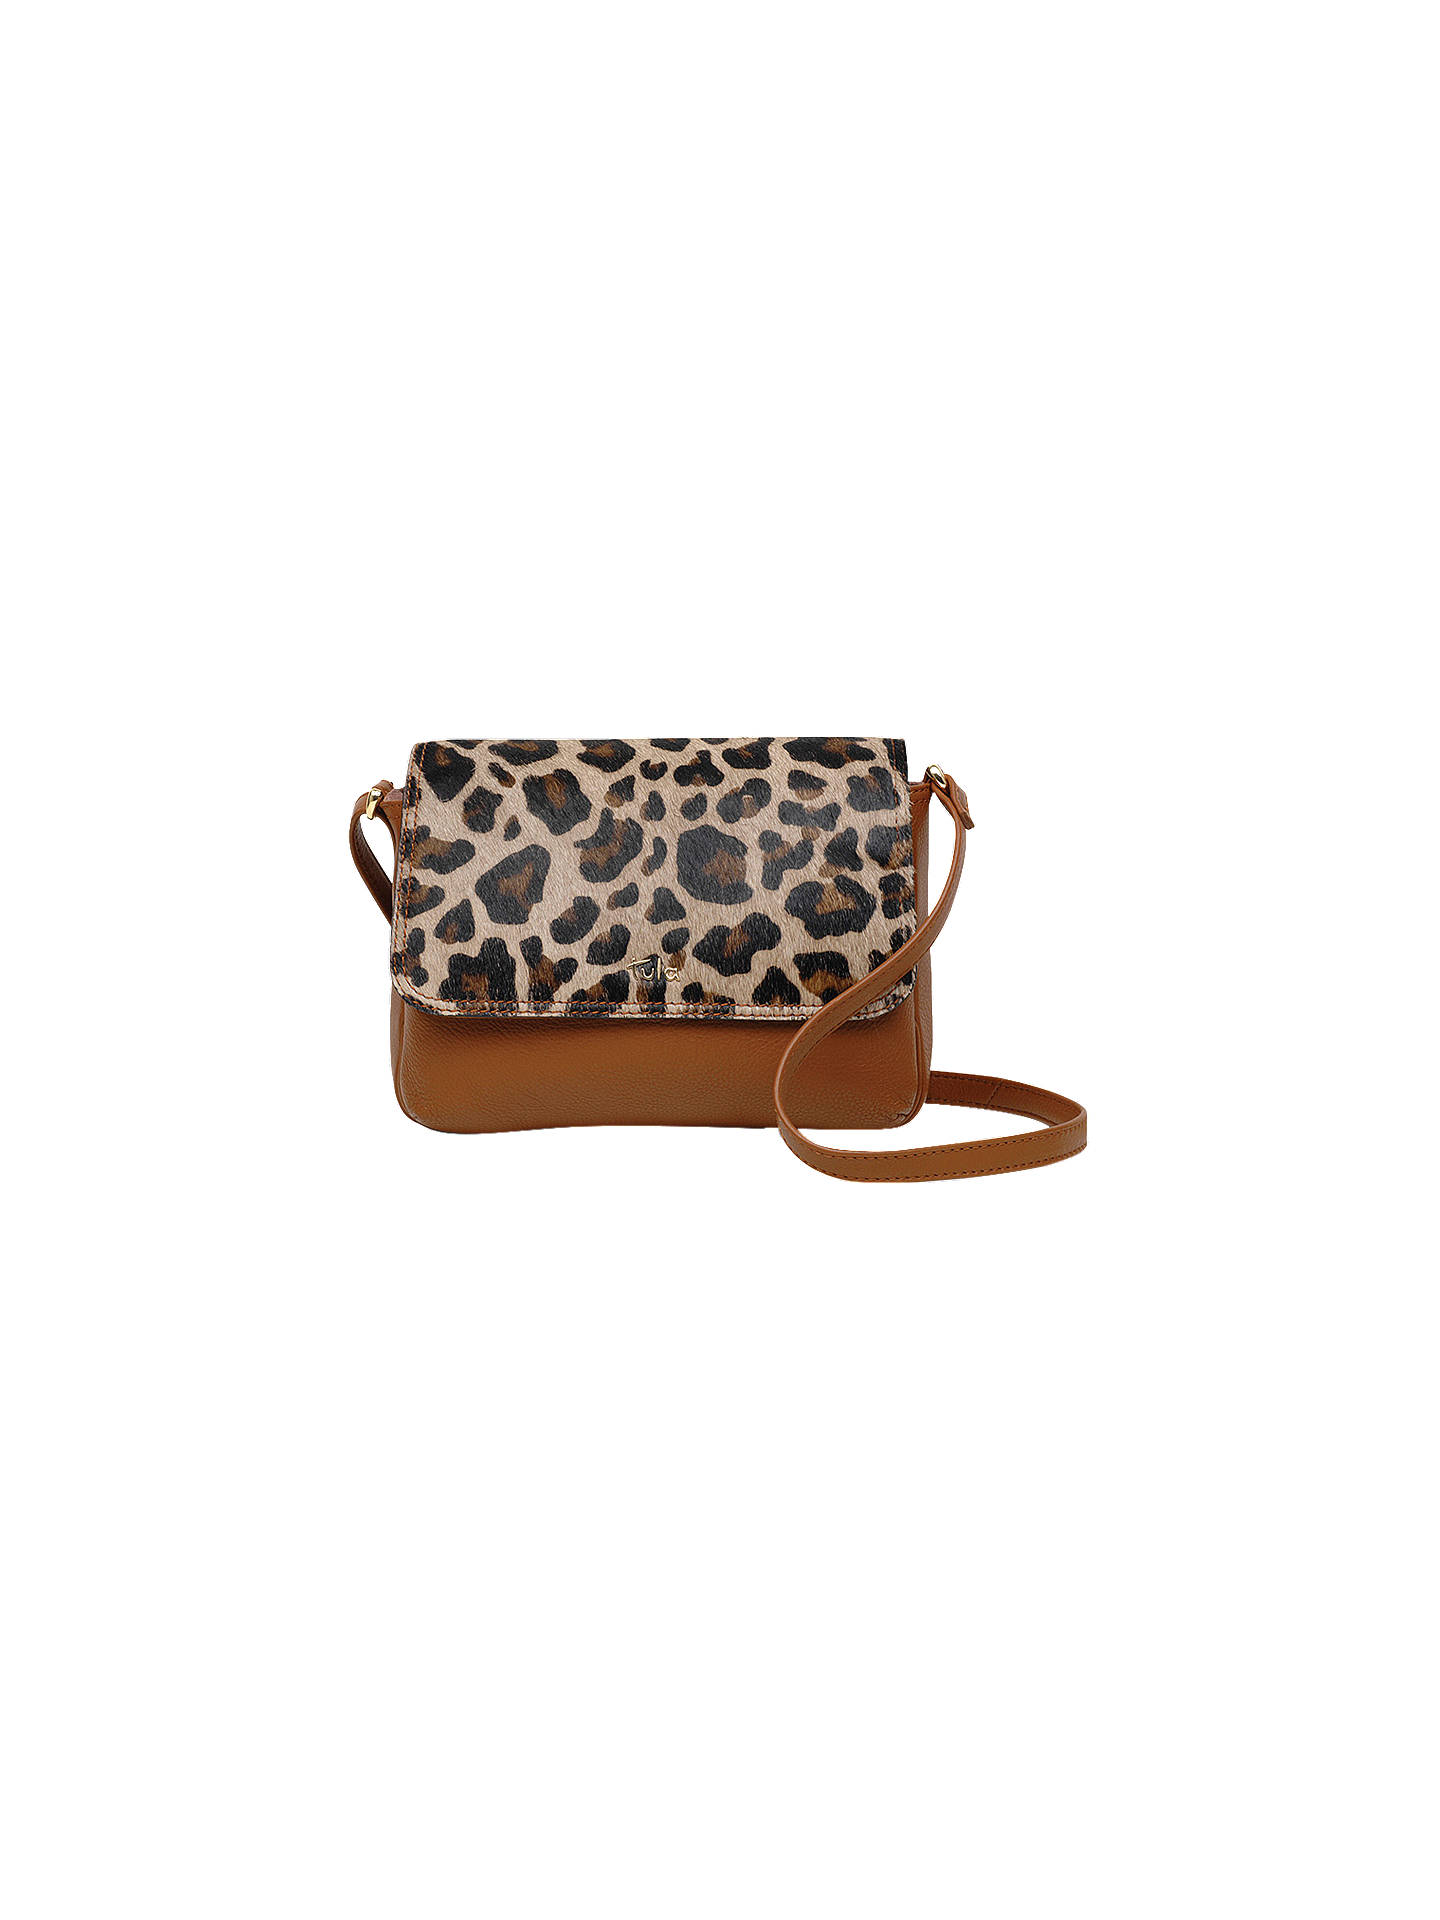 b8390032b1f8 Buy Tula Faux Leopard Leather Small Flapover Cross Body Bag, Tan Online at  johnlewis.